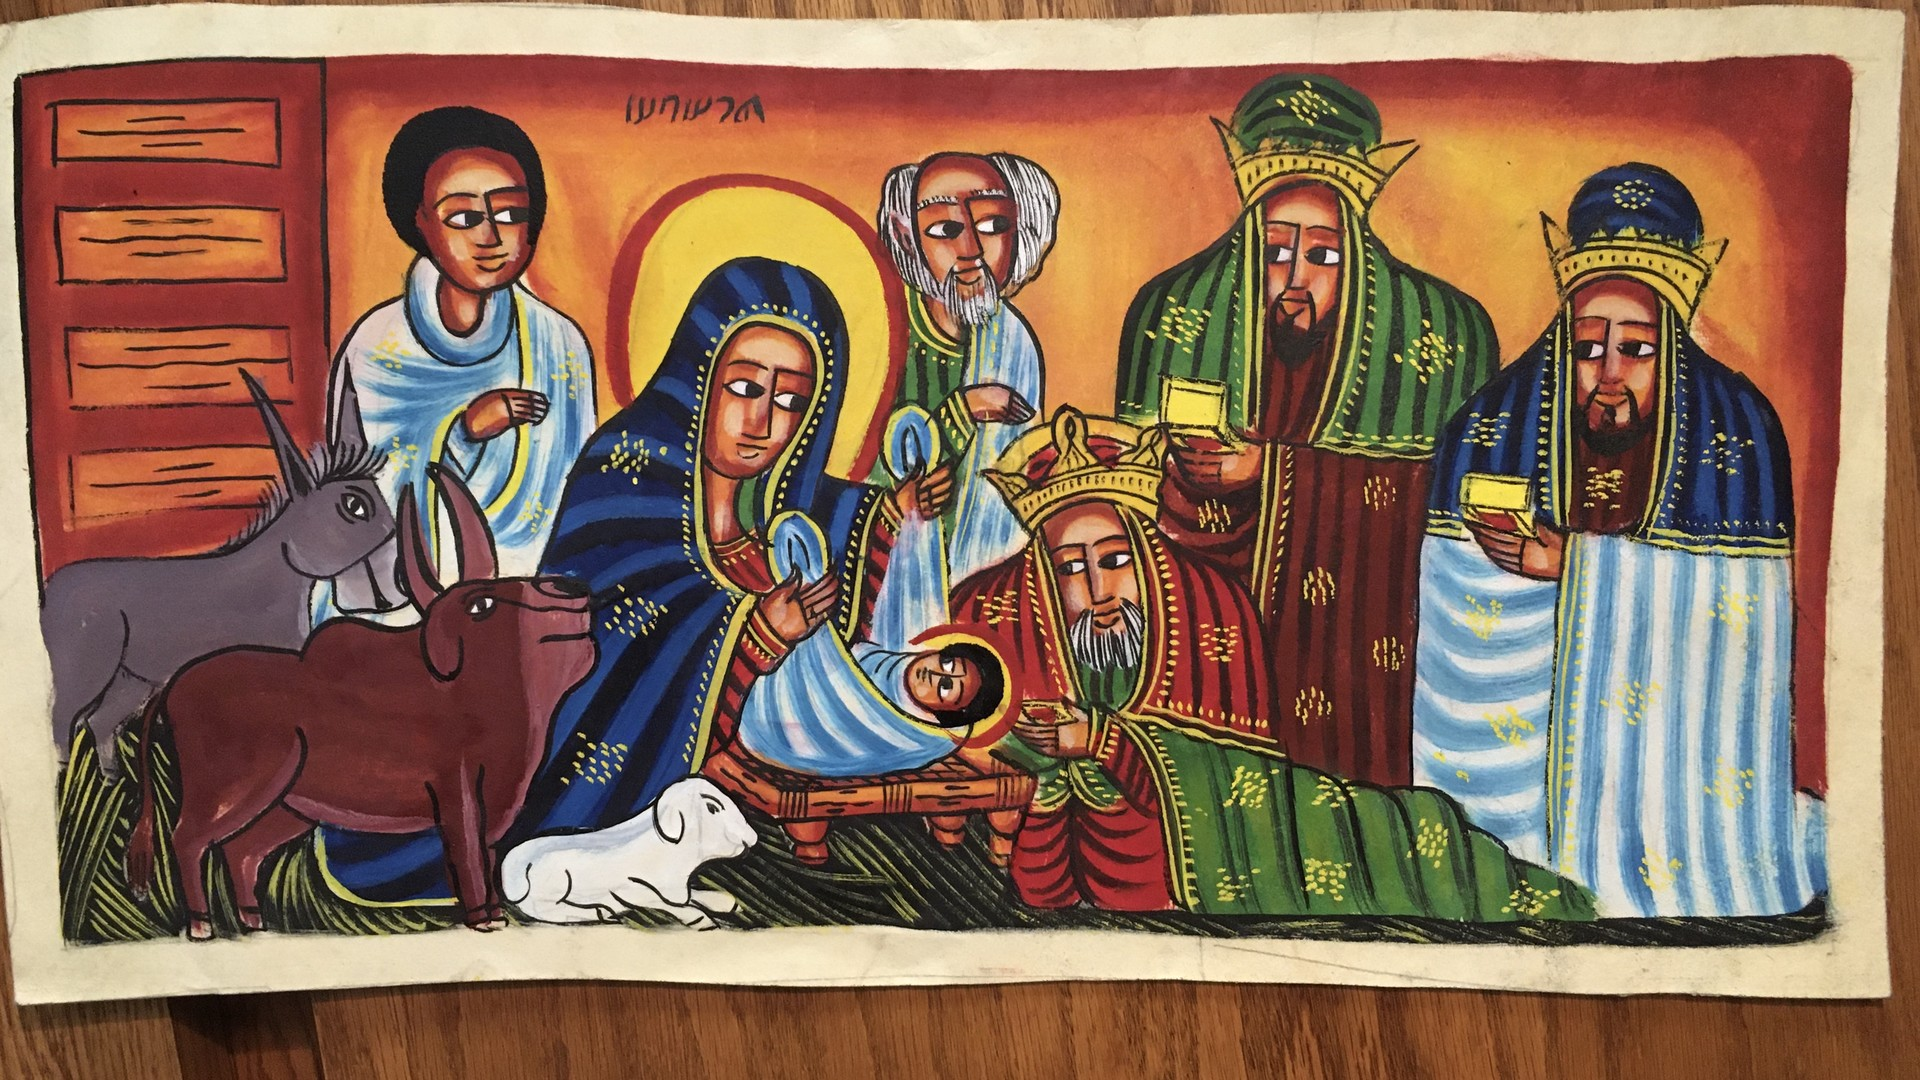 This nativity scene from Ethiopia is painted on goat skin.